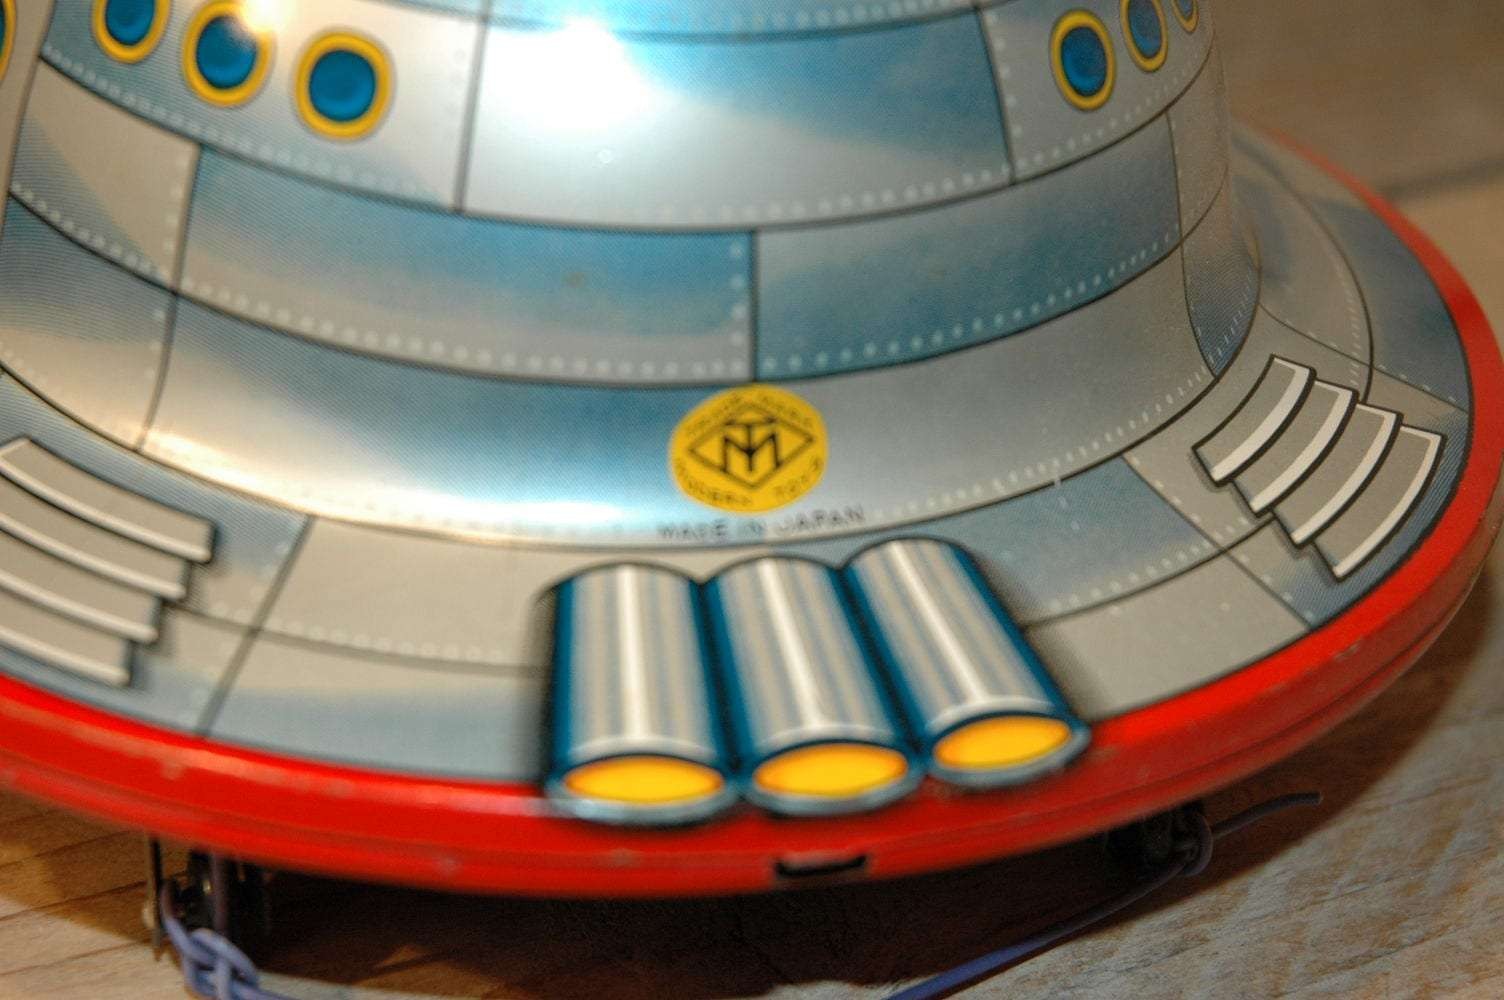 Modern Toys - Satellite X-11 Flying Saucer